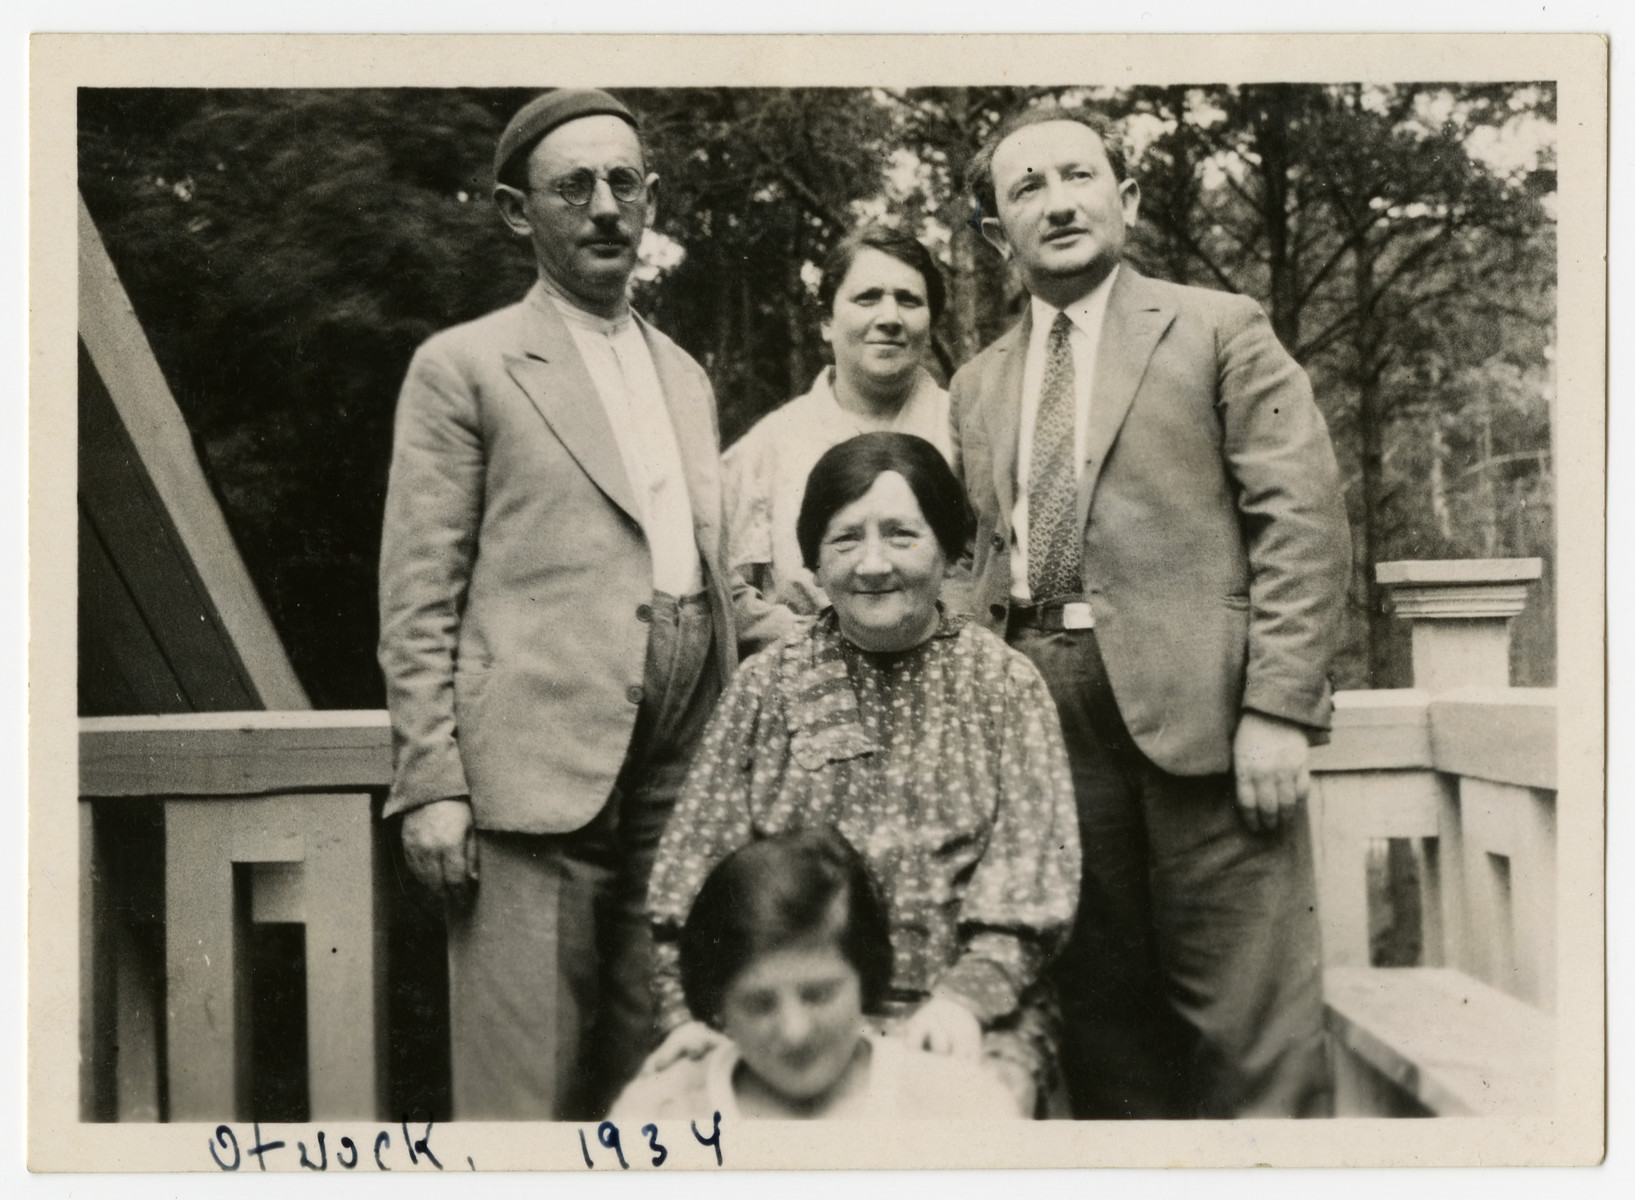 Miriam Rabinowitz sits on a porch surrounded by her children and granddaughter.   In the front is Celinka Rabinowitz (Szyja's daughter).  Standing from left to right are Szyja, Doba (Szyja's wife) and Pinchas Rabinowitz.